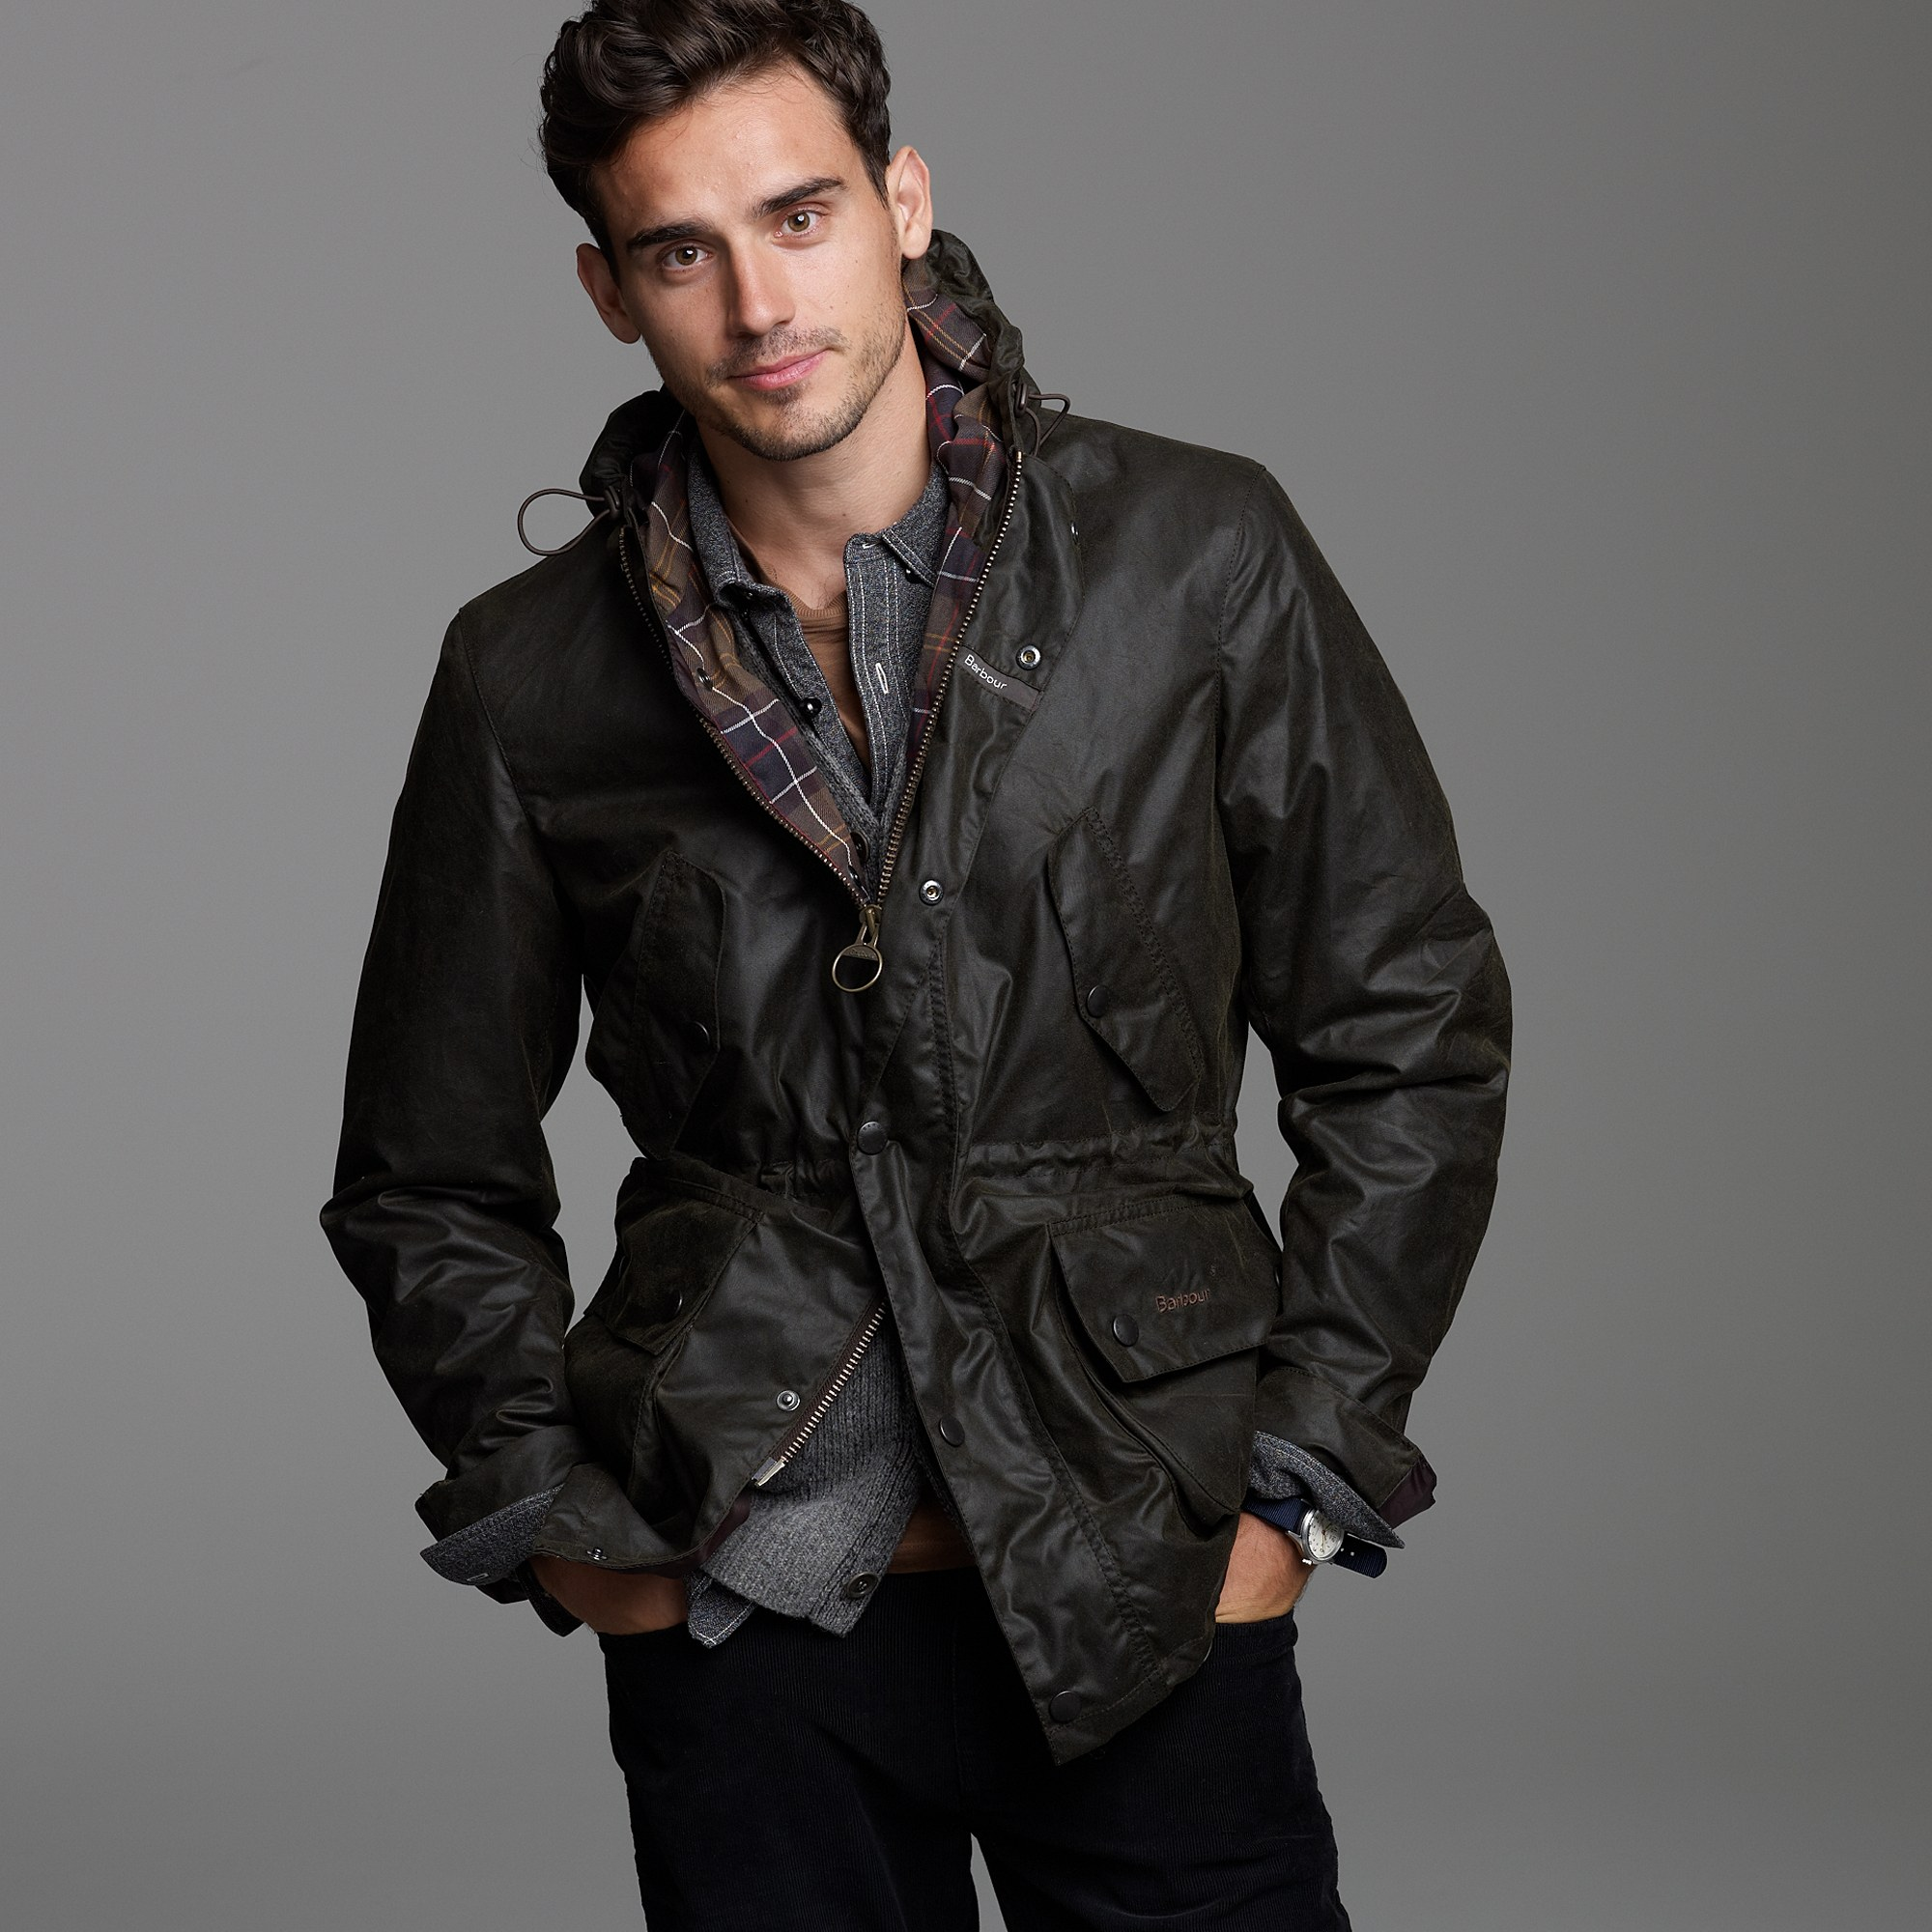 J Crew Barbour 174 Derwent Jacket In Black For Men Lyst